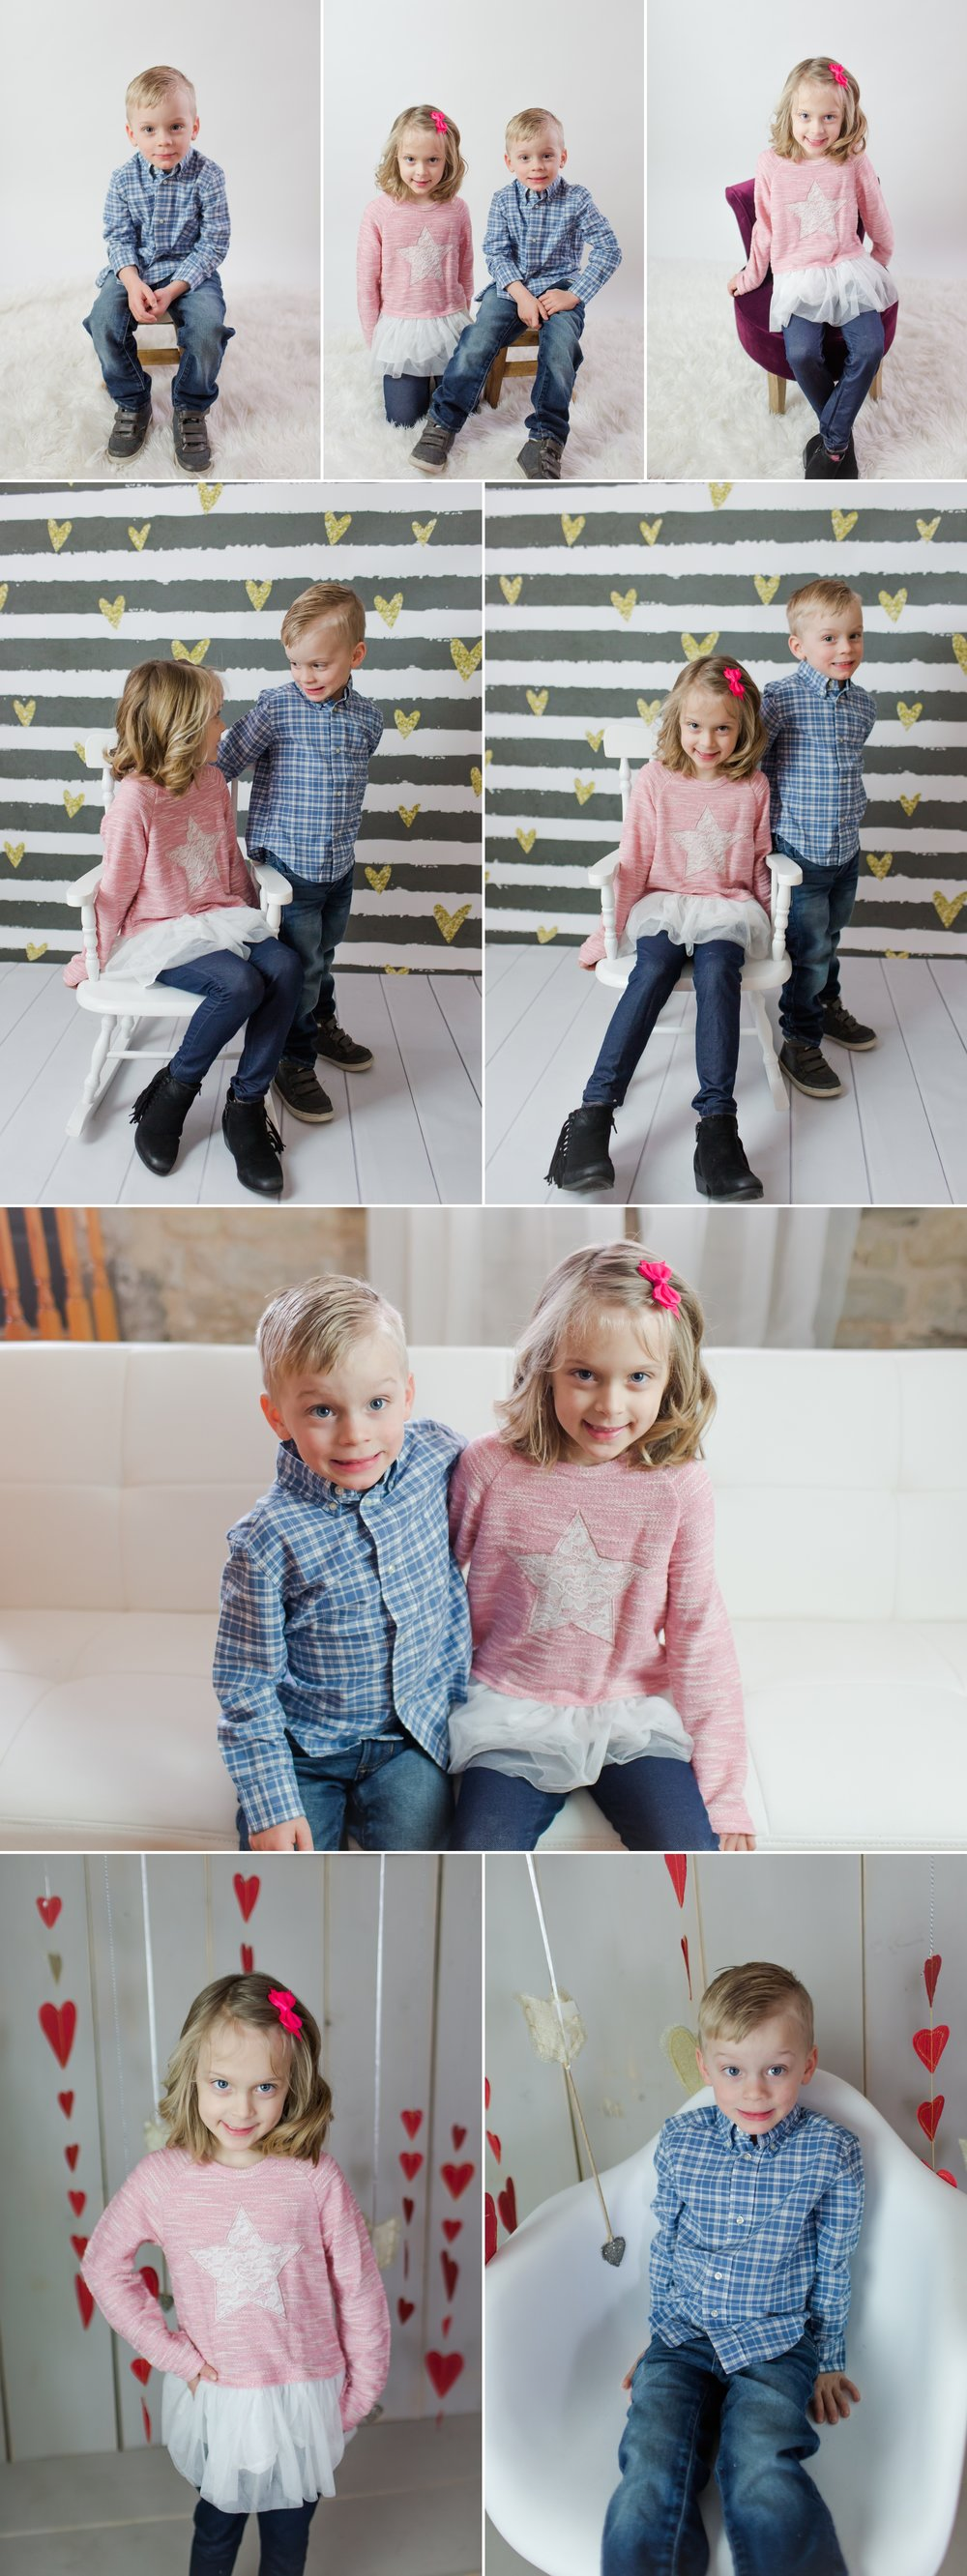 valentine_mini_sessions_mini_session_photography_sibling_baby_toddler_props_hearts_ideas 4